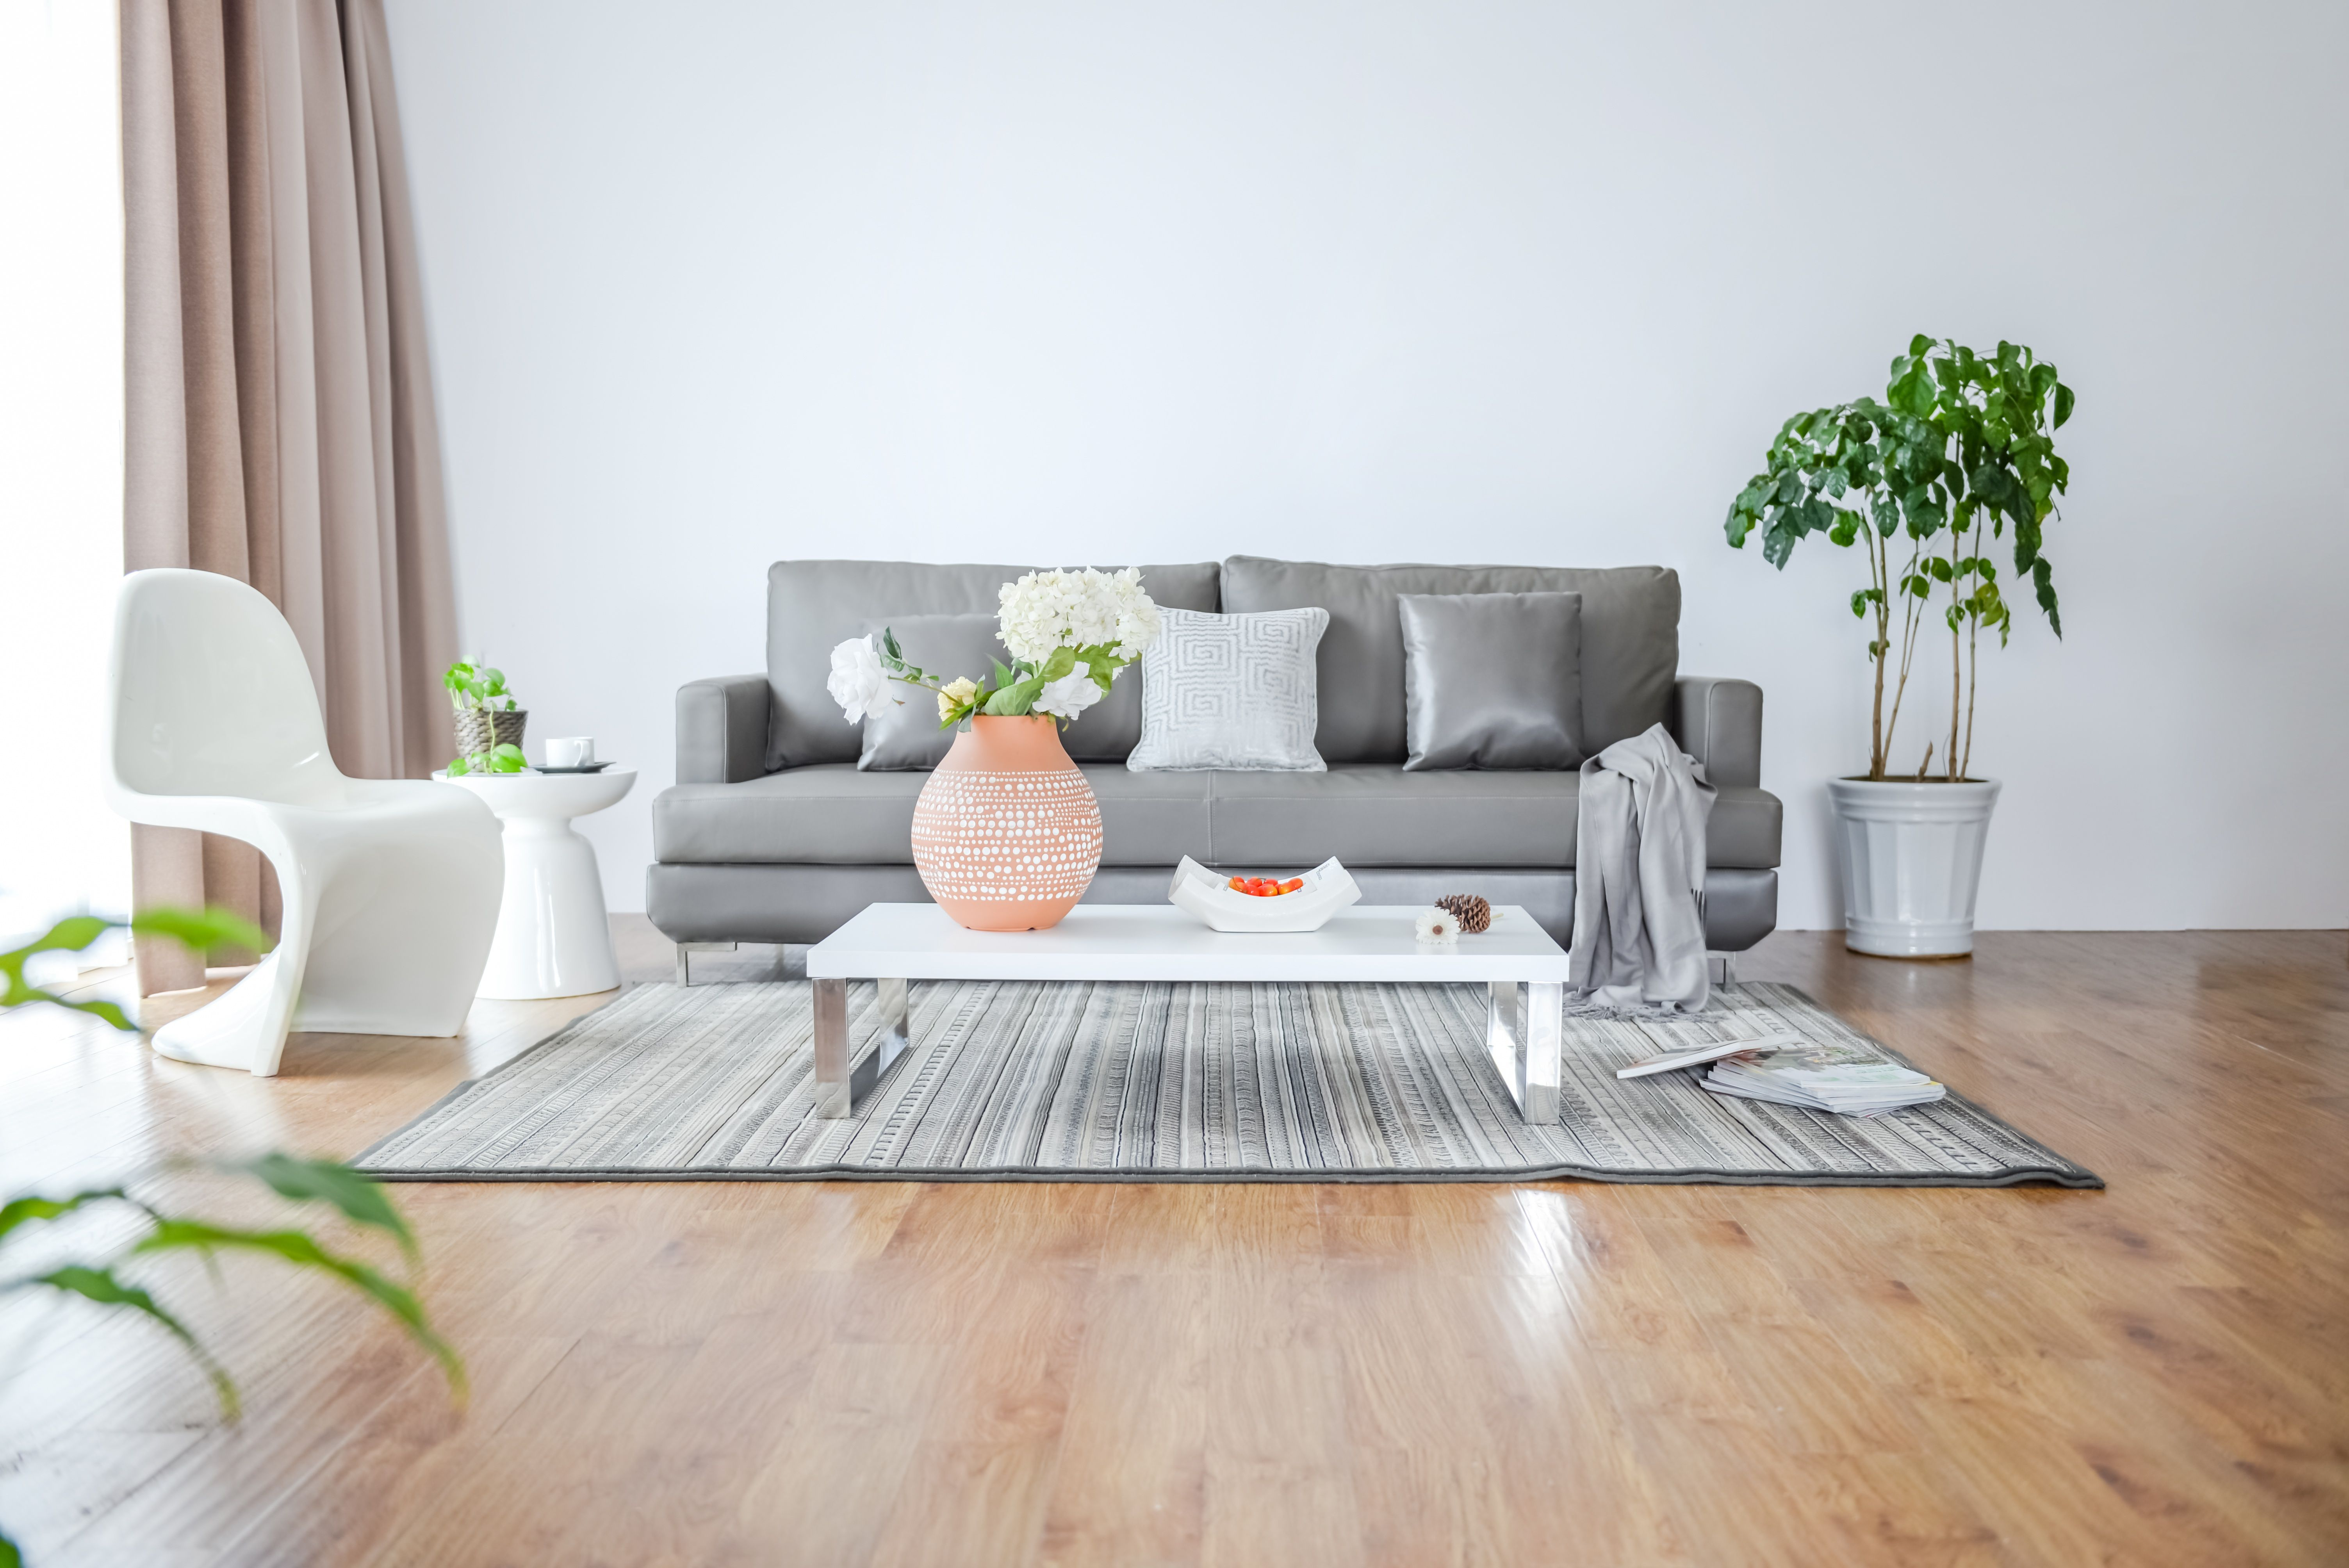 A minimalist living room of a Build To Rent property with a white chair, a grey sofa, a green plant from left to right.